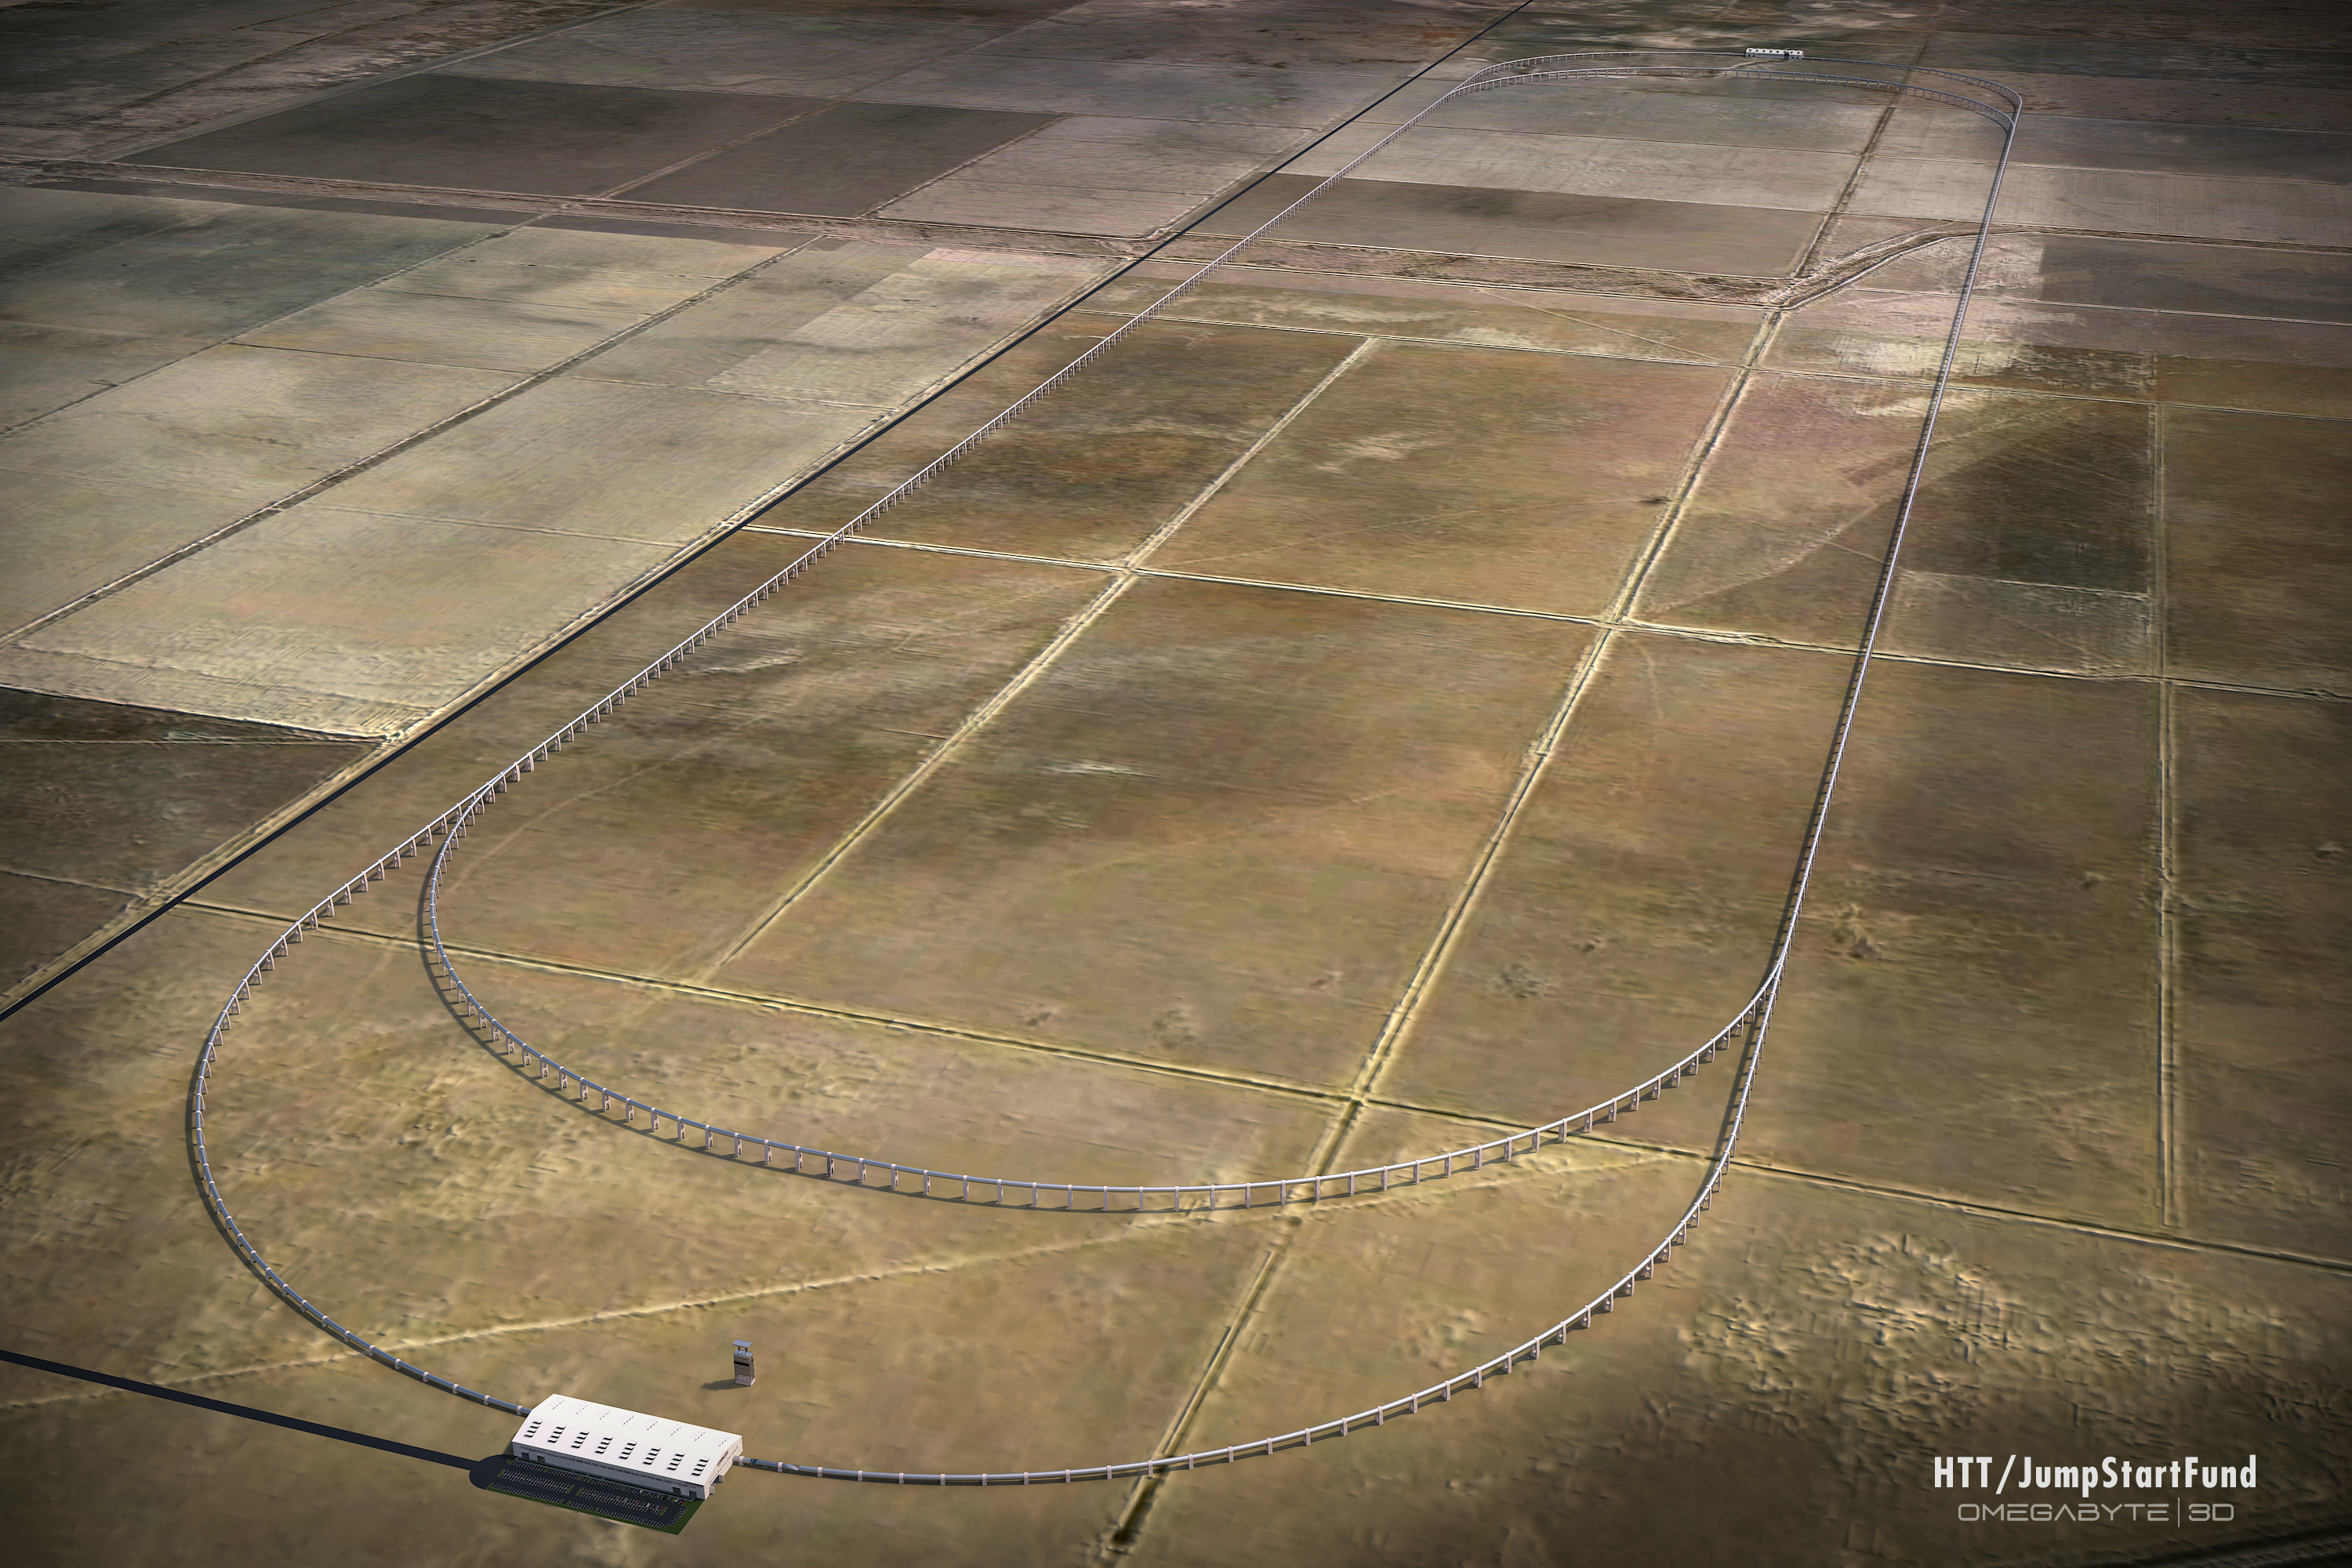 A rendering of the proposed test track.